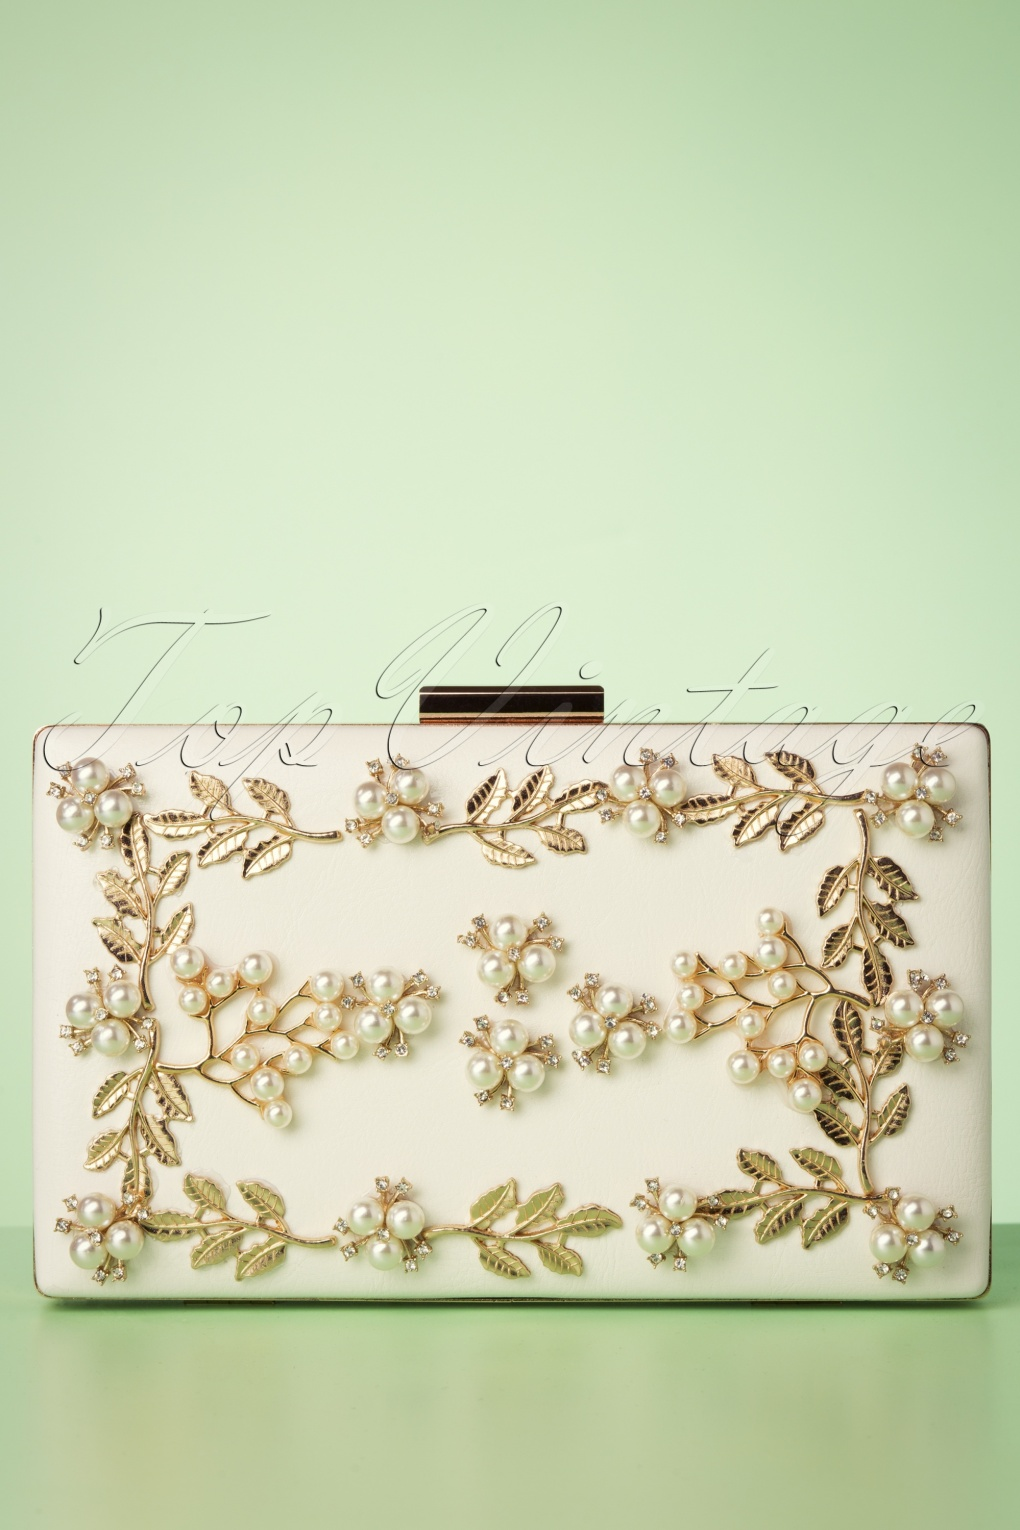 Vintage & Retro Handbags, Purses, Wallets, Bags 50s Gold Vine and Pearl Hardcase Clutch in Ivory �44.11 AT vintagedancer.com